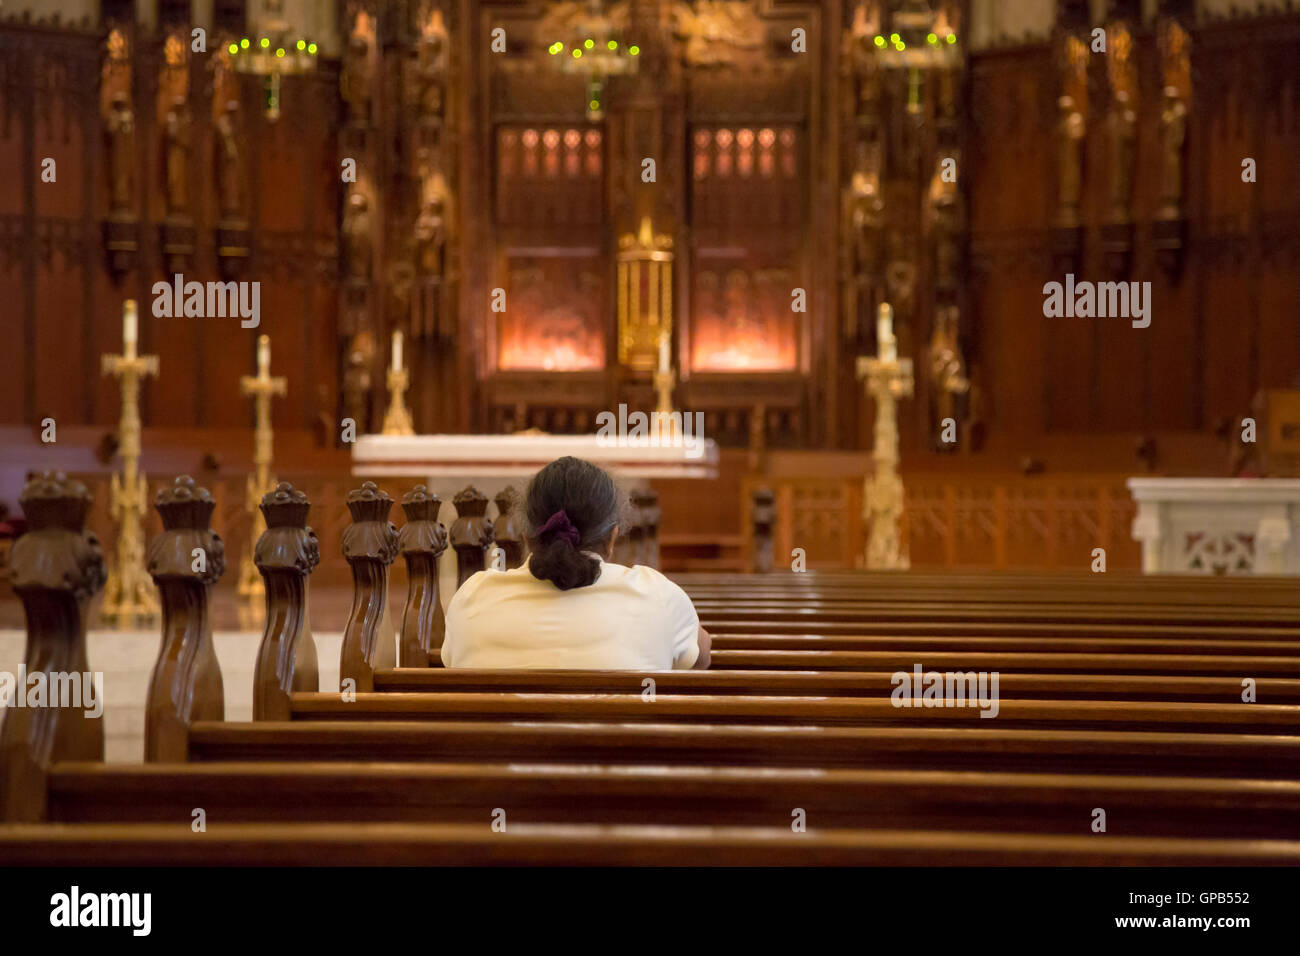 Fort Wayne, Indiana - A woman prays in the Cathedral of the Immaculate Conception. - Stock Image